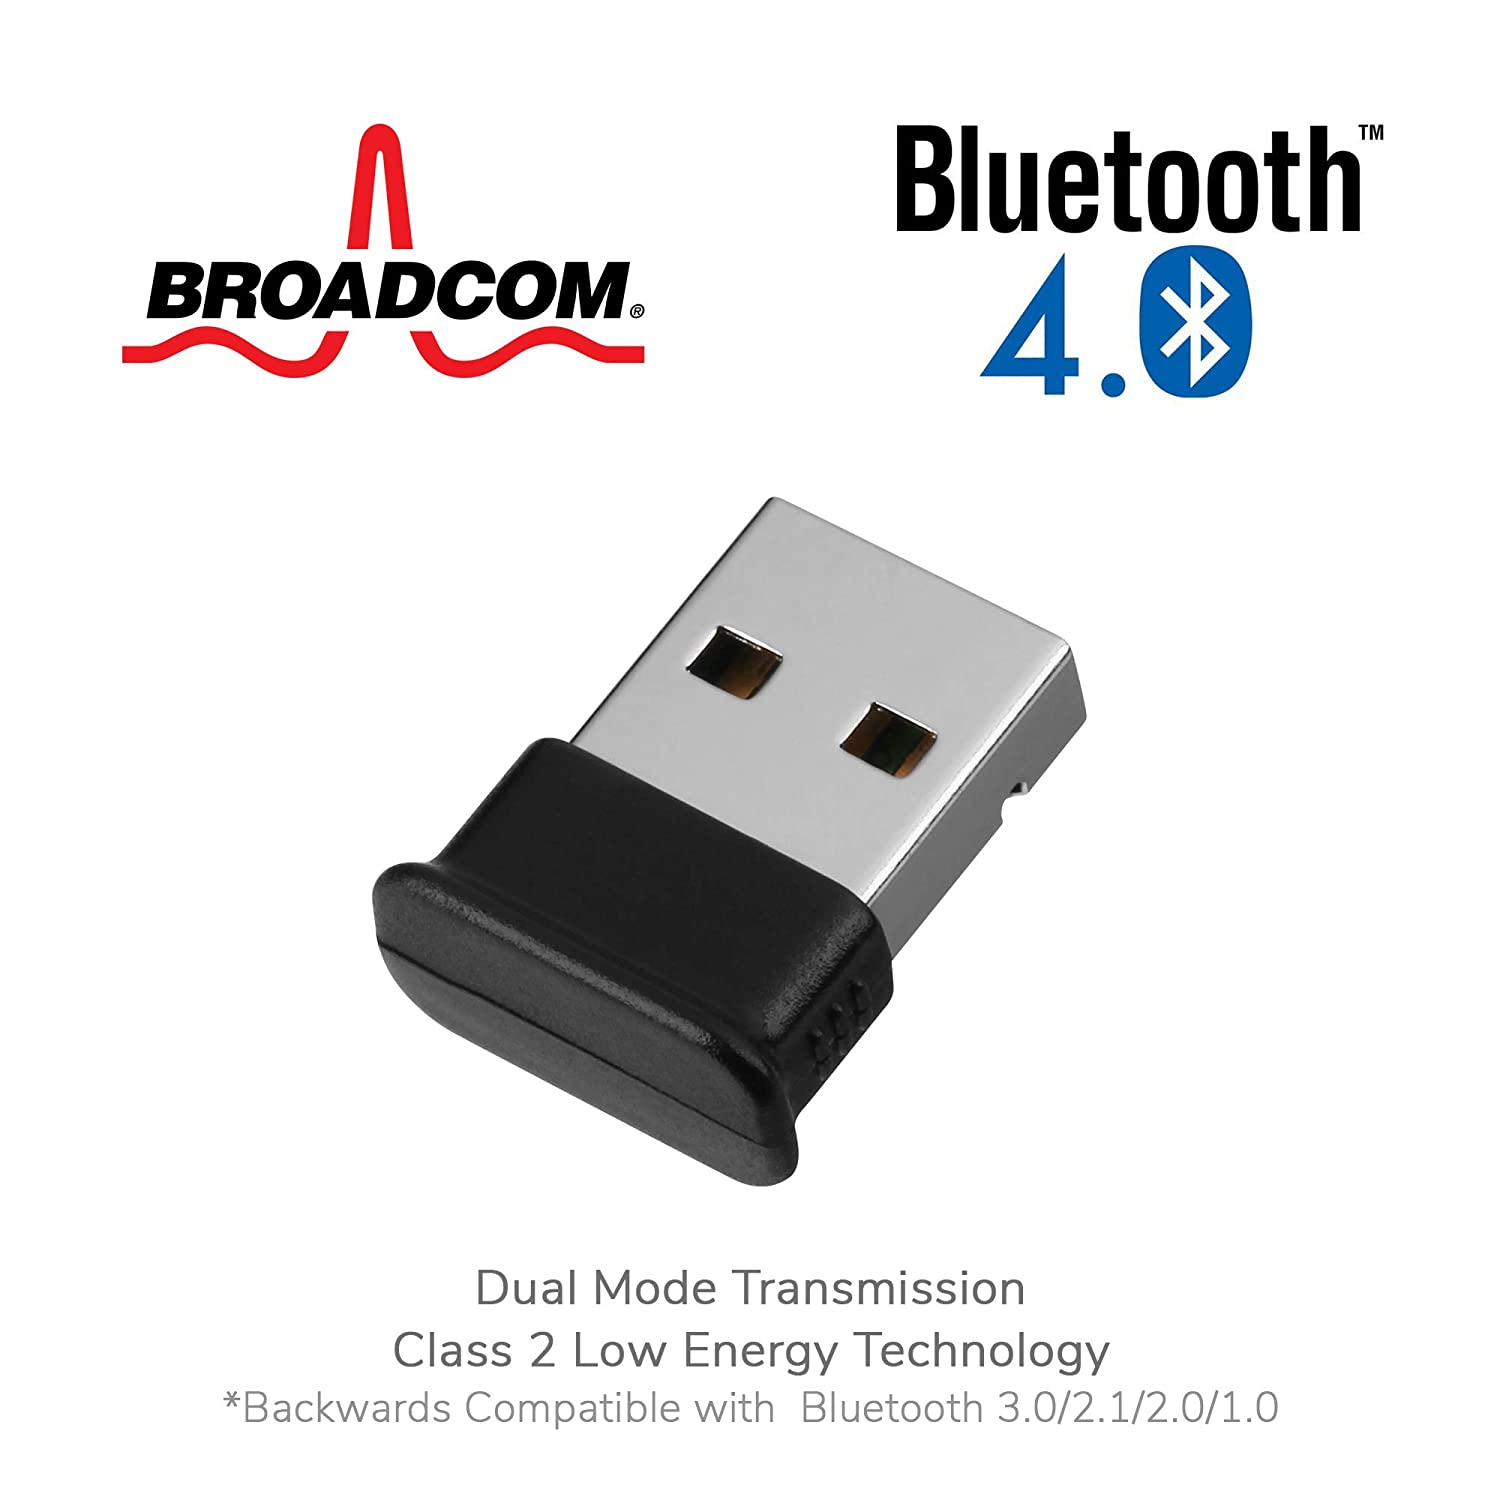 BROADCOM BLUETOOTH MINIDRIVER DOWNLOAD DRIVER